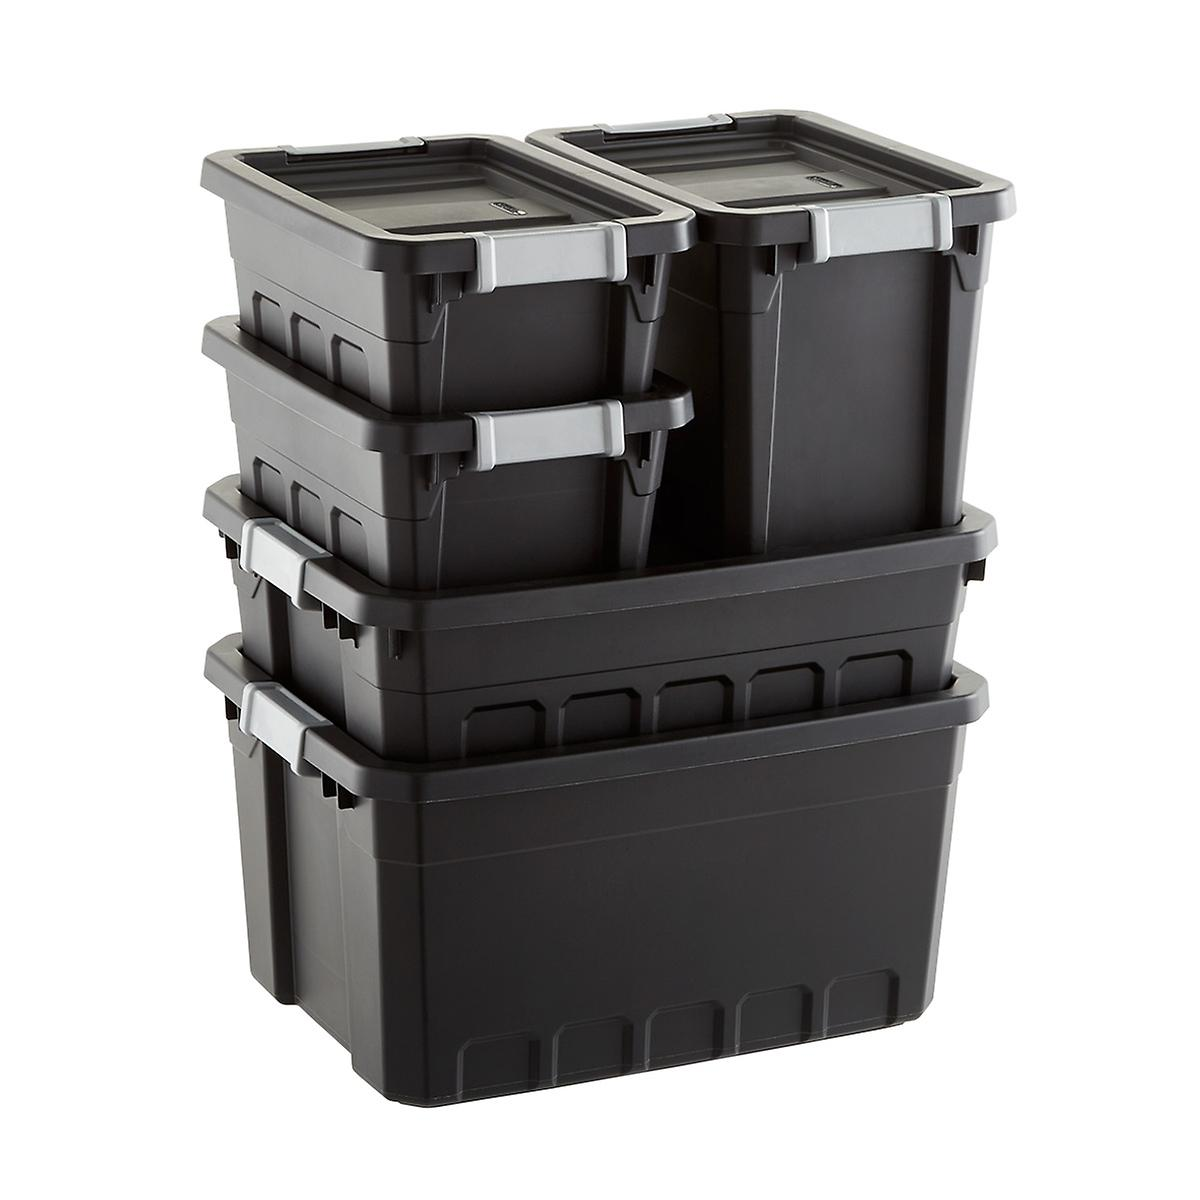 Sterilite Black Stacker Totes Cases of 6